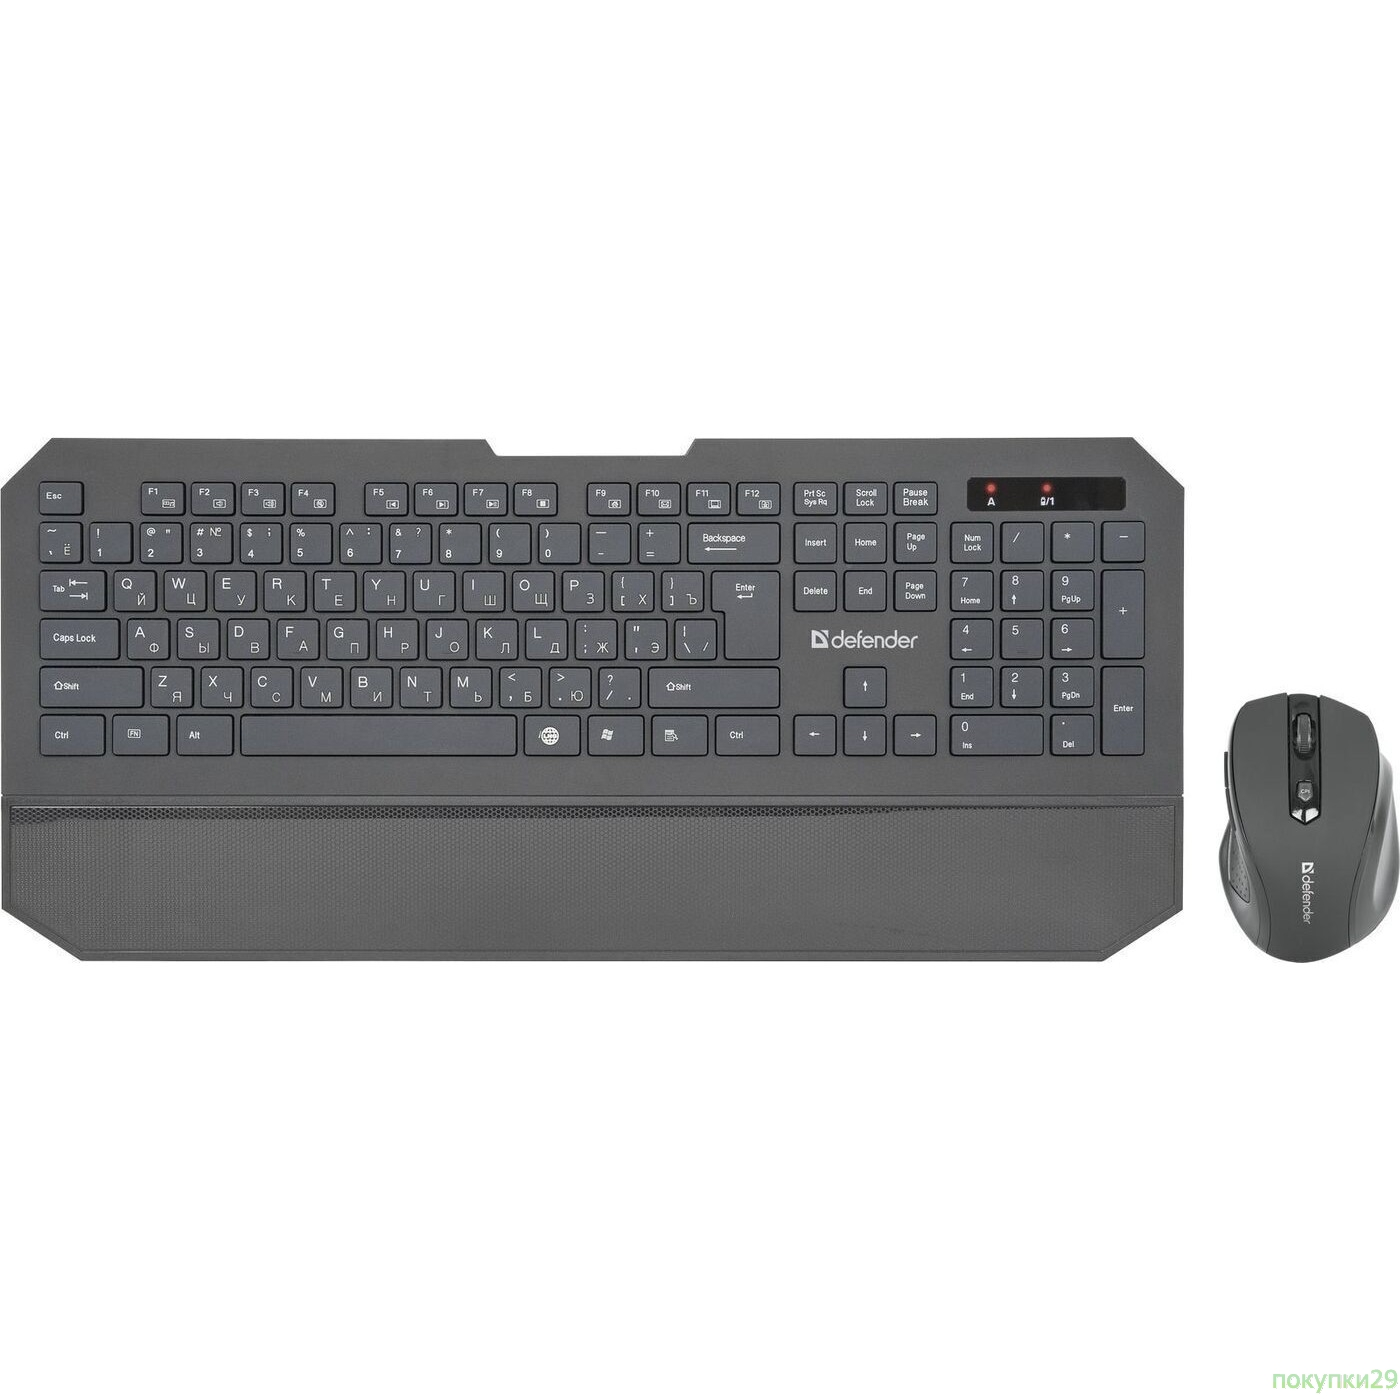 Клавиатура DEFENDER Berkeley C-925 Nano, B (Черн) Кл:104+12 М:6кн, 800/1200/1600